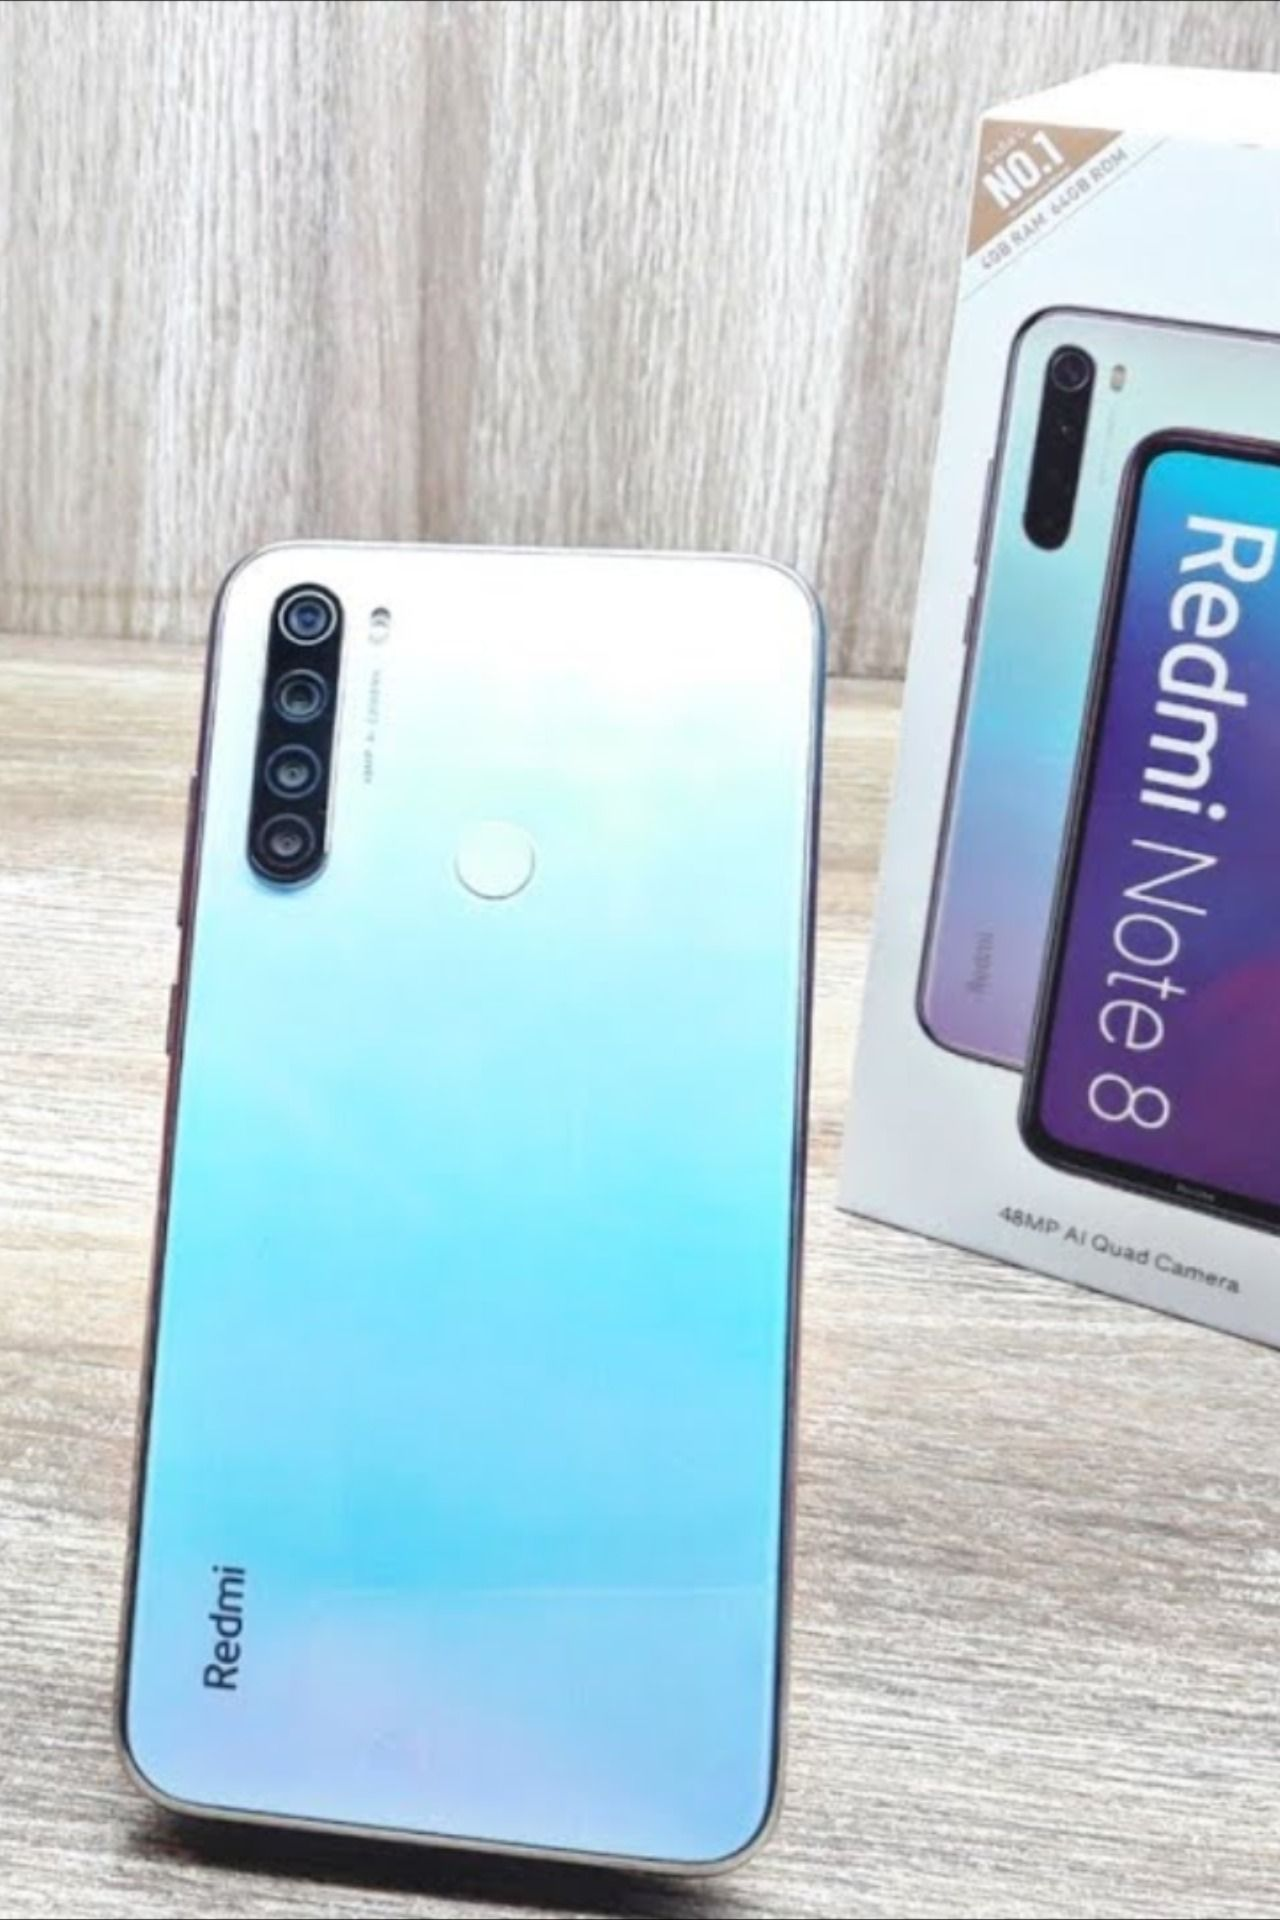 Xiaomi Redmi Note 8 Blue Cell Phones Sale Price Reviews Iphone Offers Cell Phones For Sale Xiaomi